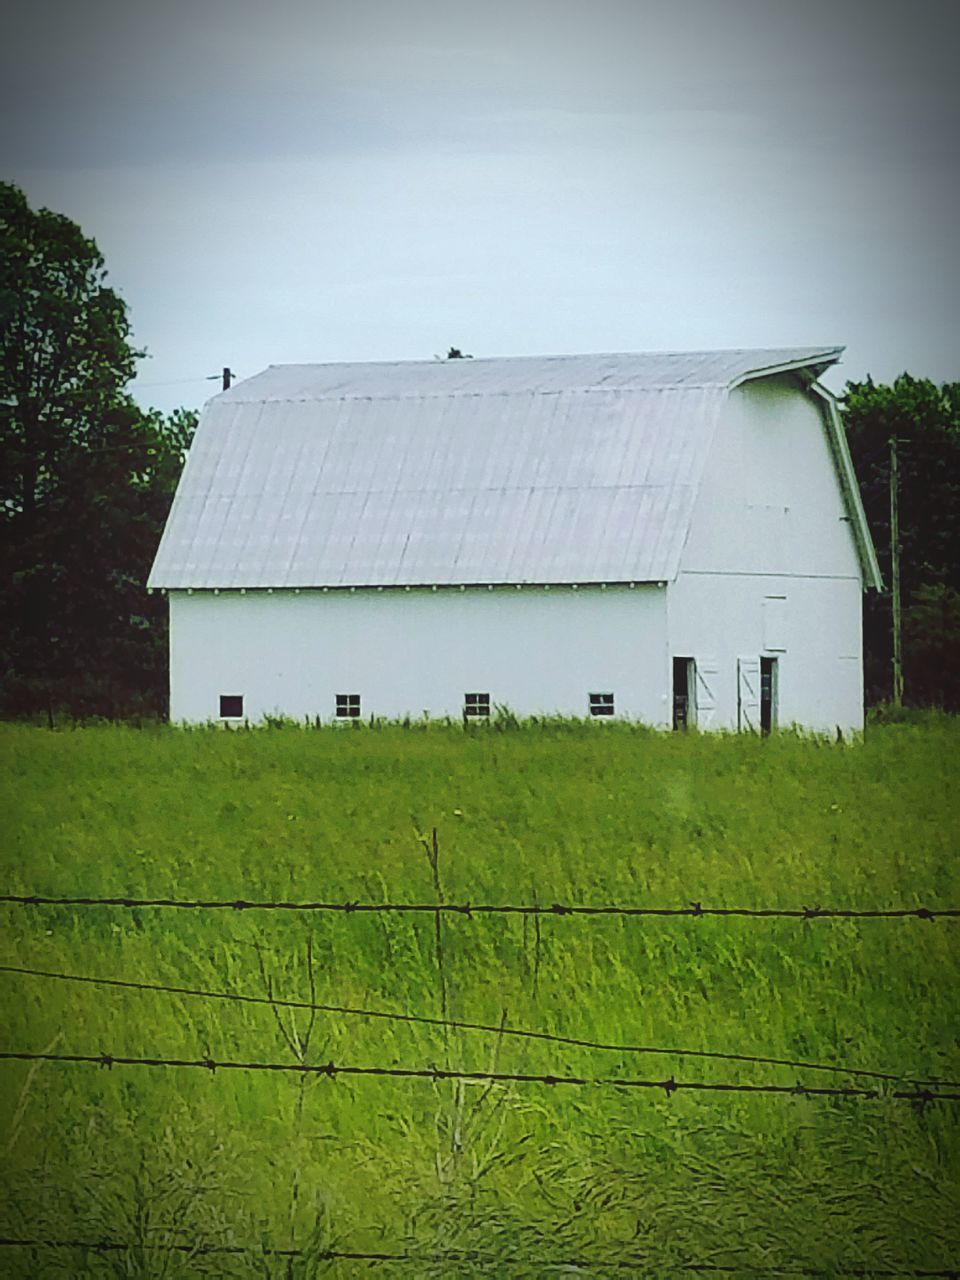 built structure, architecture, field, farm, building exterior, no people, barn, green color, agriculture, day, growth, grass, outdoors, tree, landscape, nature, rural scene, agricultural building, corrugated iron, sky